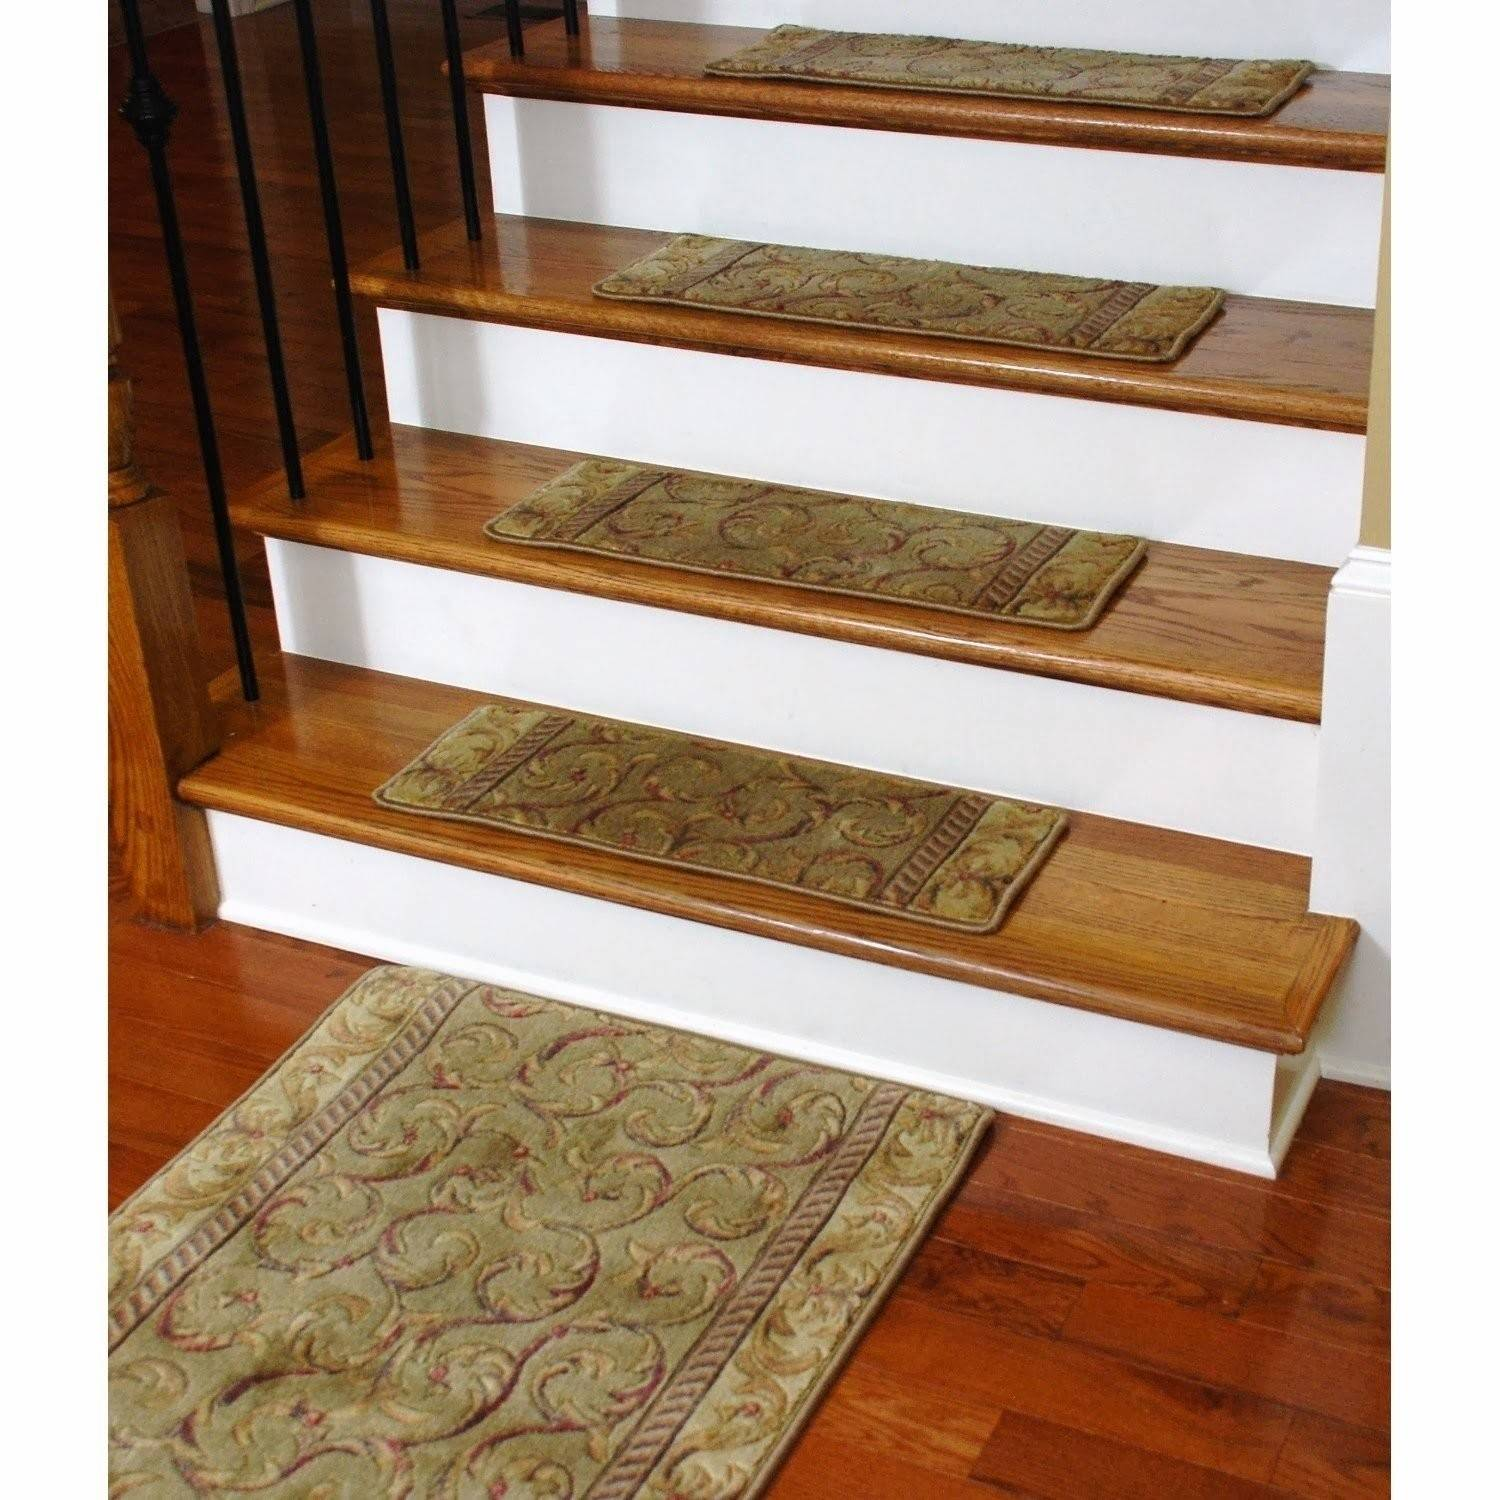 Diy Stair Treads Out Of Flor Tiles: The 19 Best Diy Stair Treads